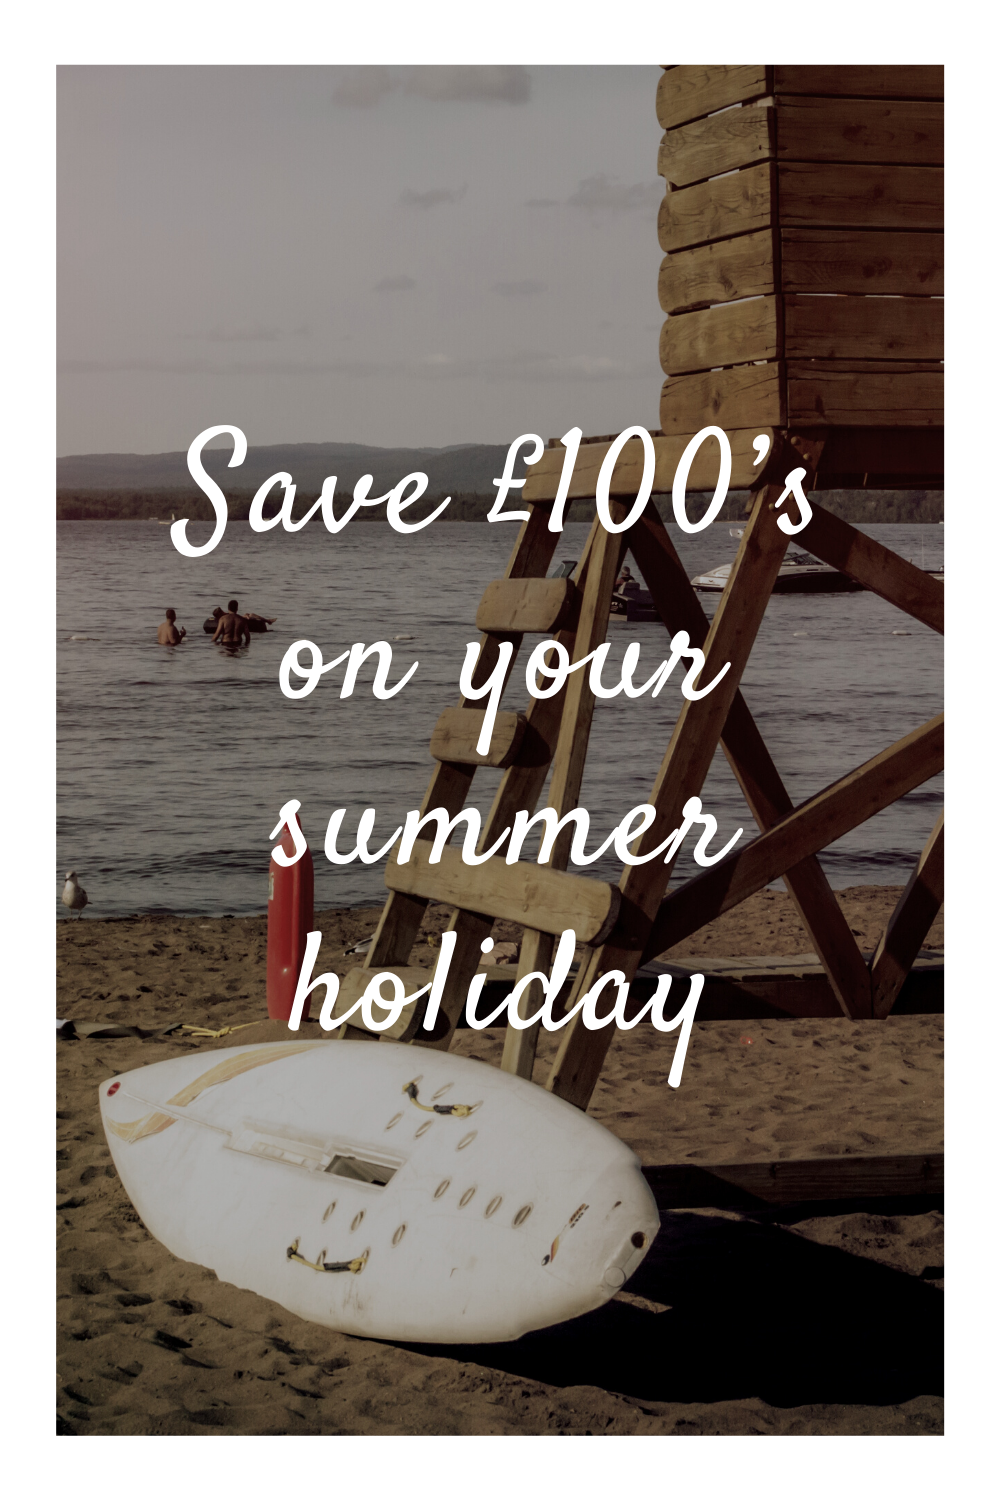 Save £100's on your summer holiday